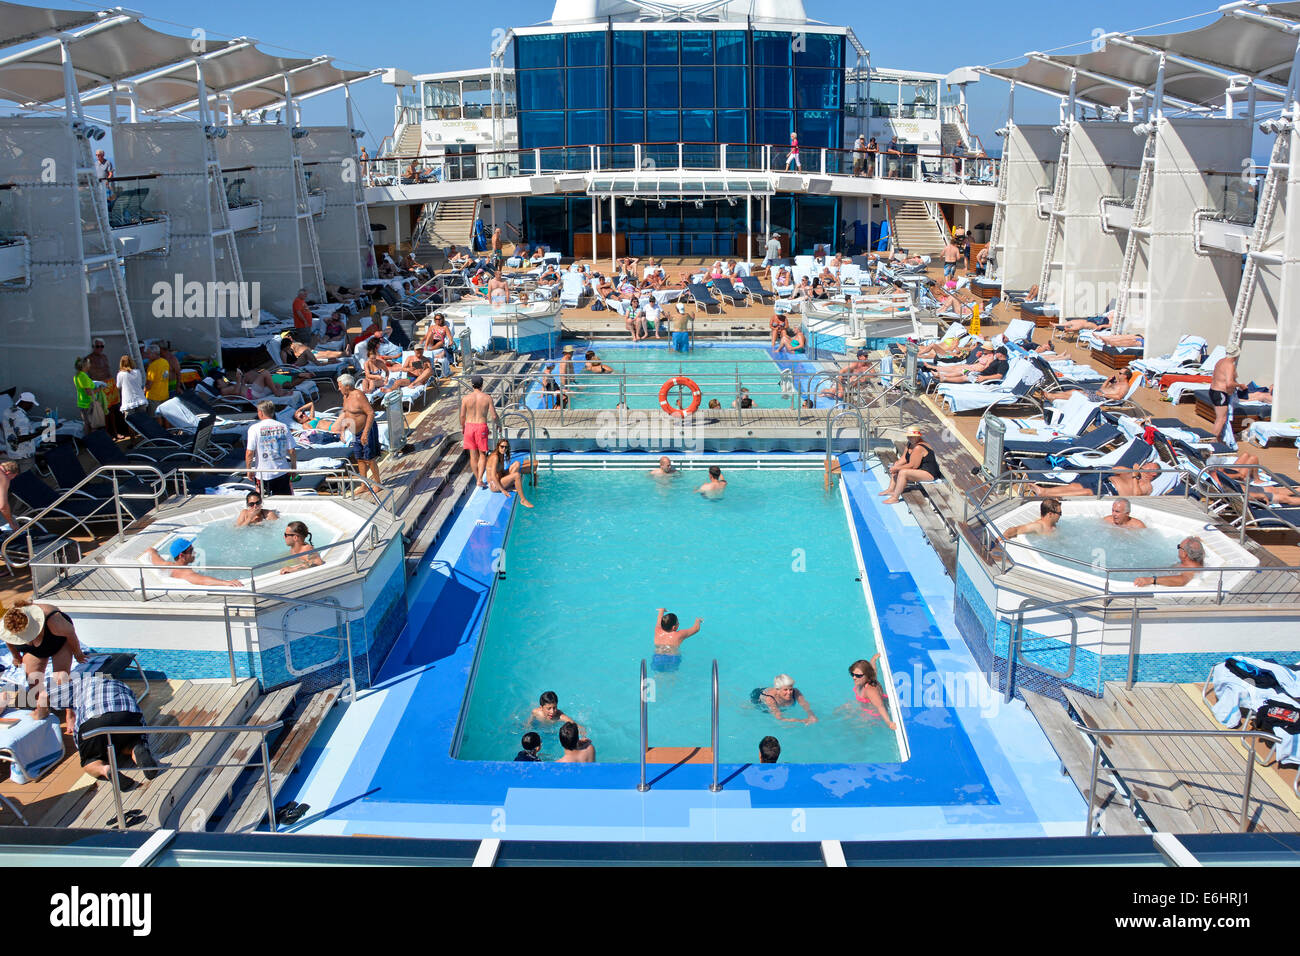 People in cruise ship liner swimming pools Jacuzzi & relaxing on sun lounger on sunbathing deck Mediterranean cruising Stock Photo